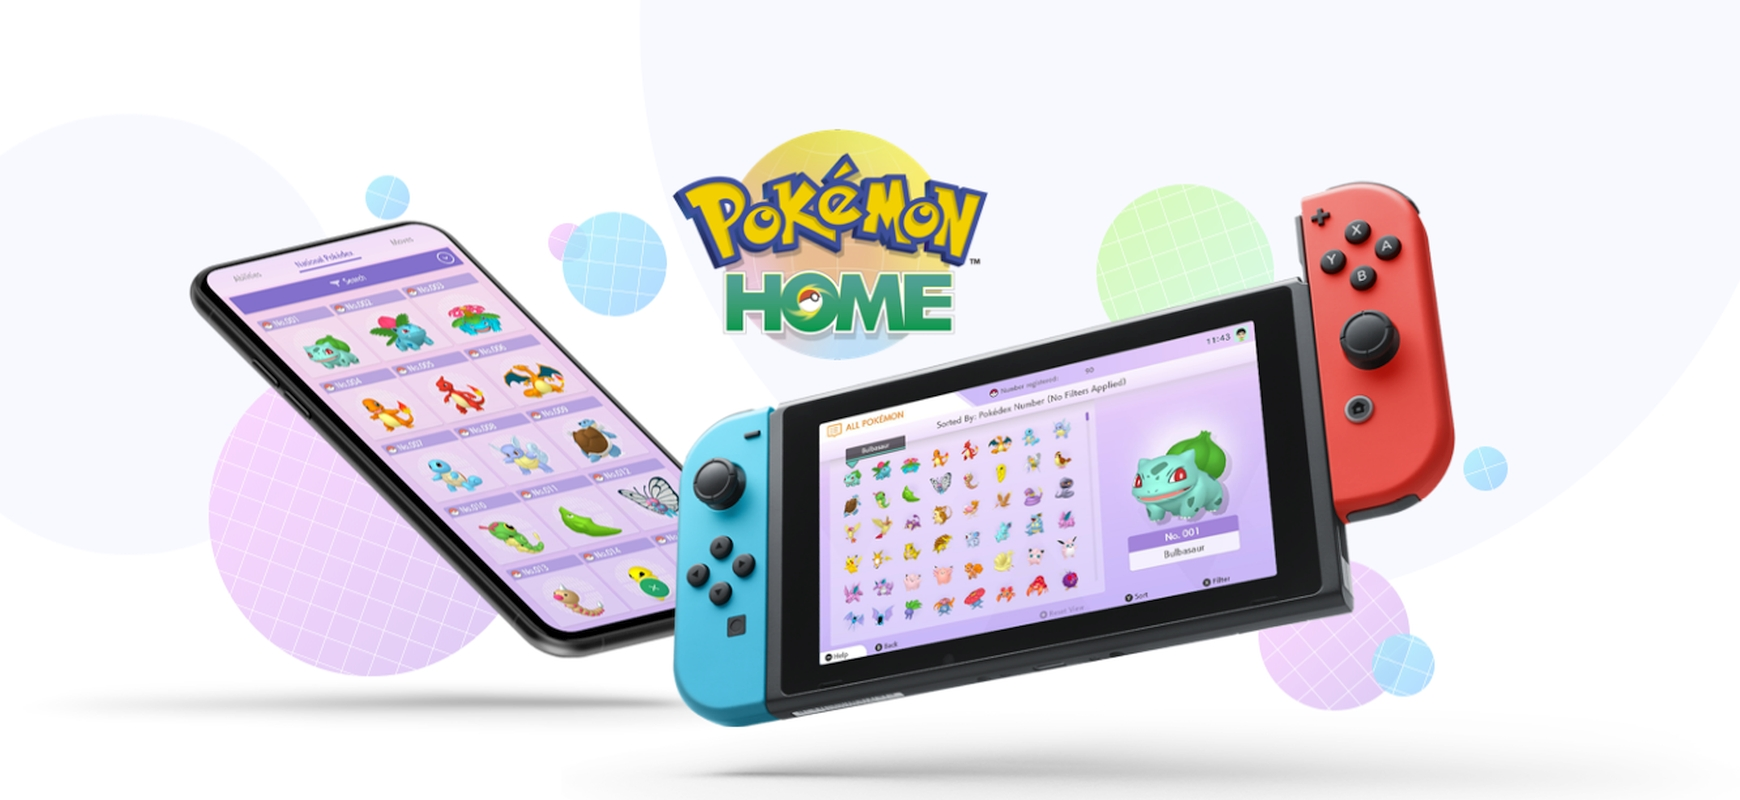 Pokémon Home Pricing And Service Details Released Online Before Its Upcoming Launch